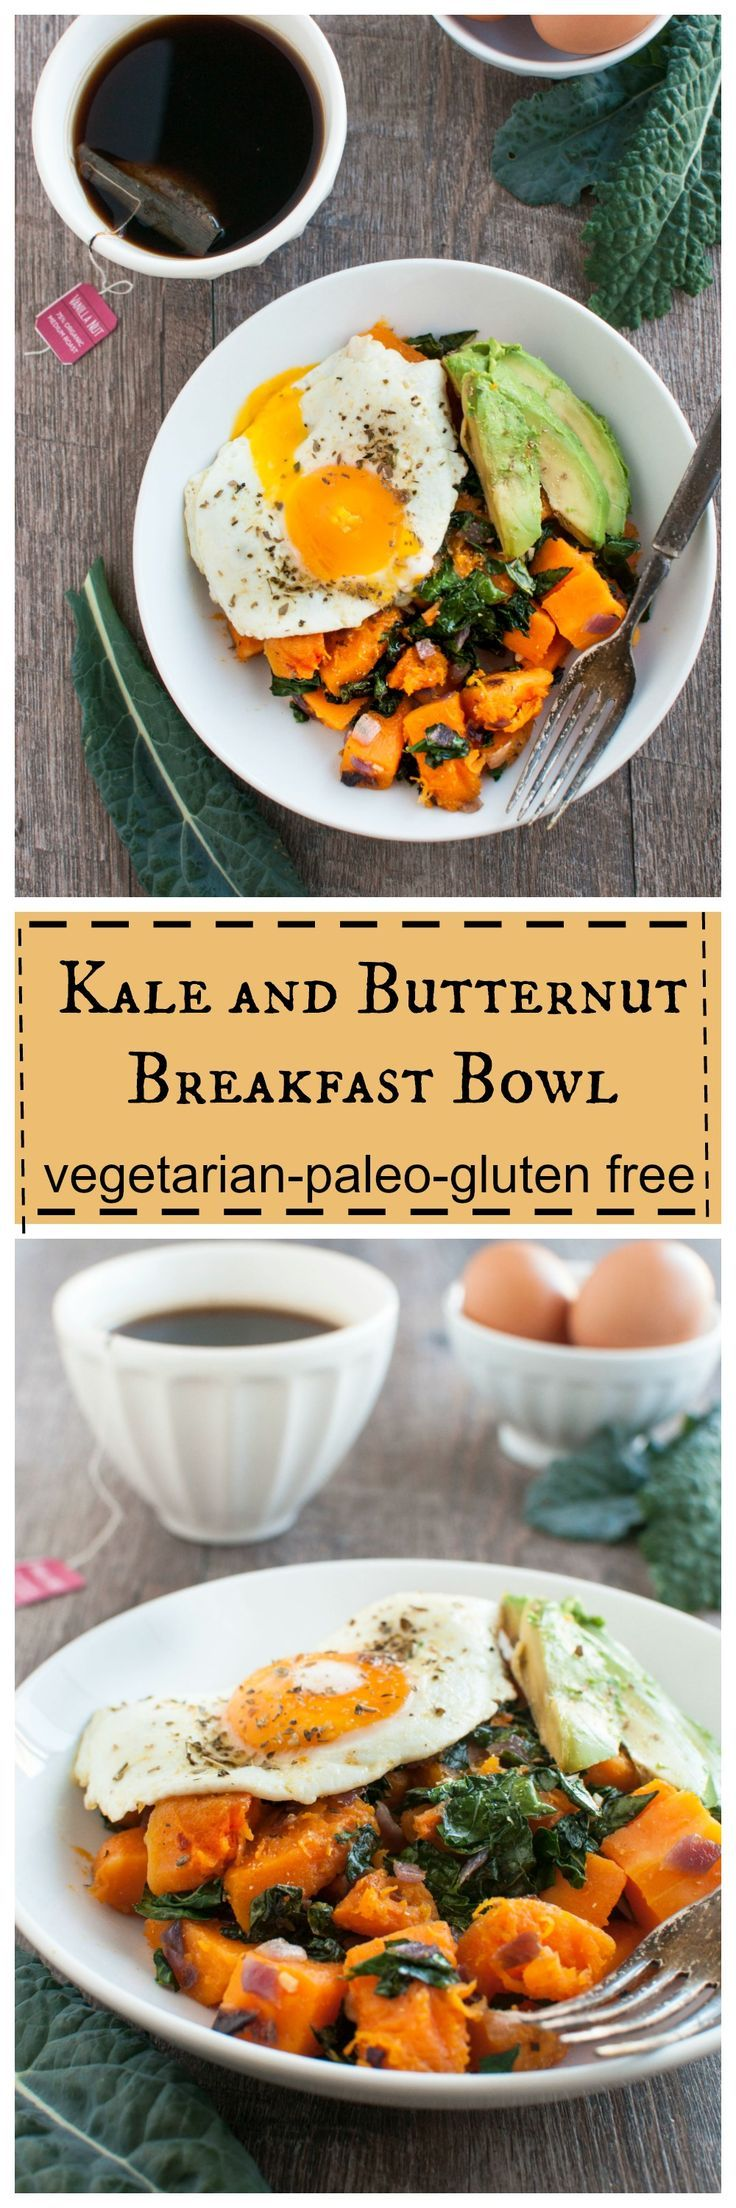 Start the day right by including vegetables into your breakfast routine. A warm kale and butternut squash breakfast bowl is a delicious…